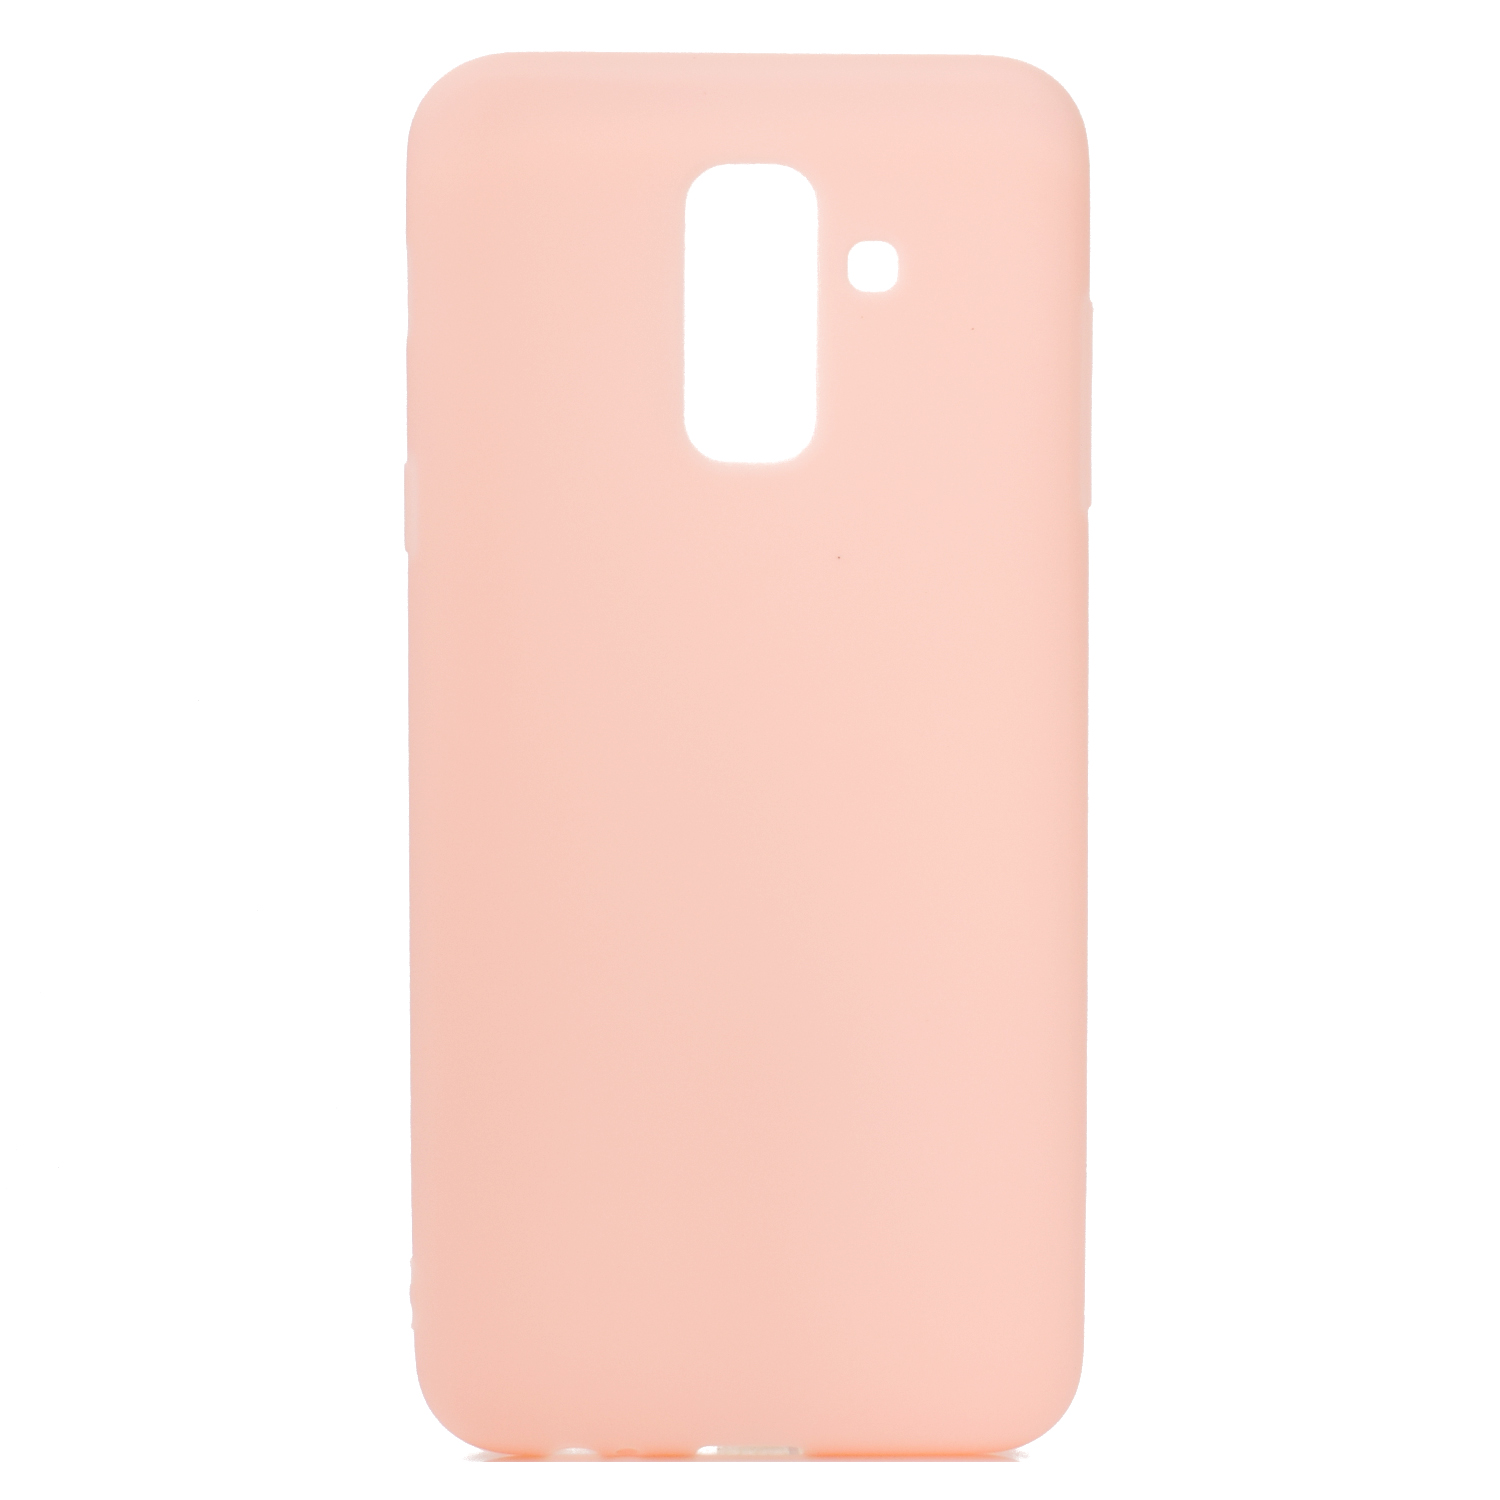 for Samsung A6 plus 2018 Lovely Candy Color Matte TPU Anti-scratch Non-slip Protective Cover Back Case Light pink